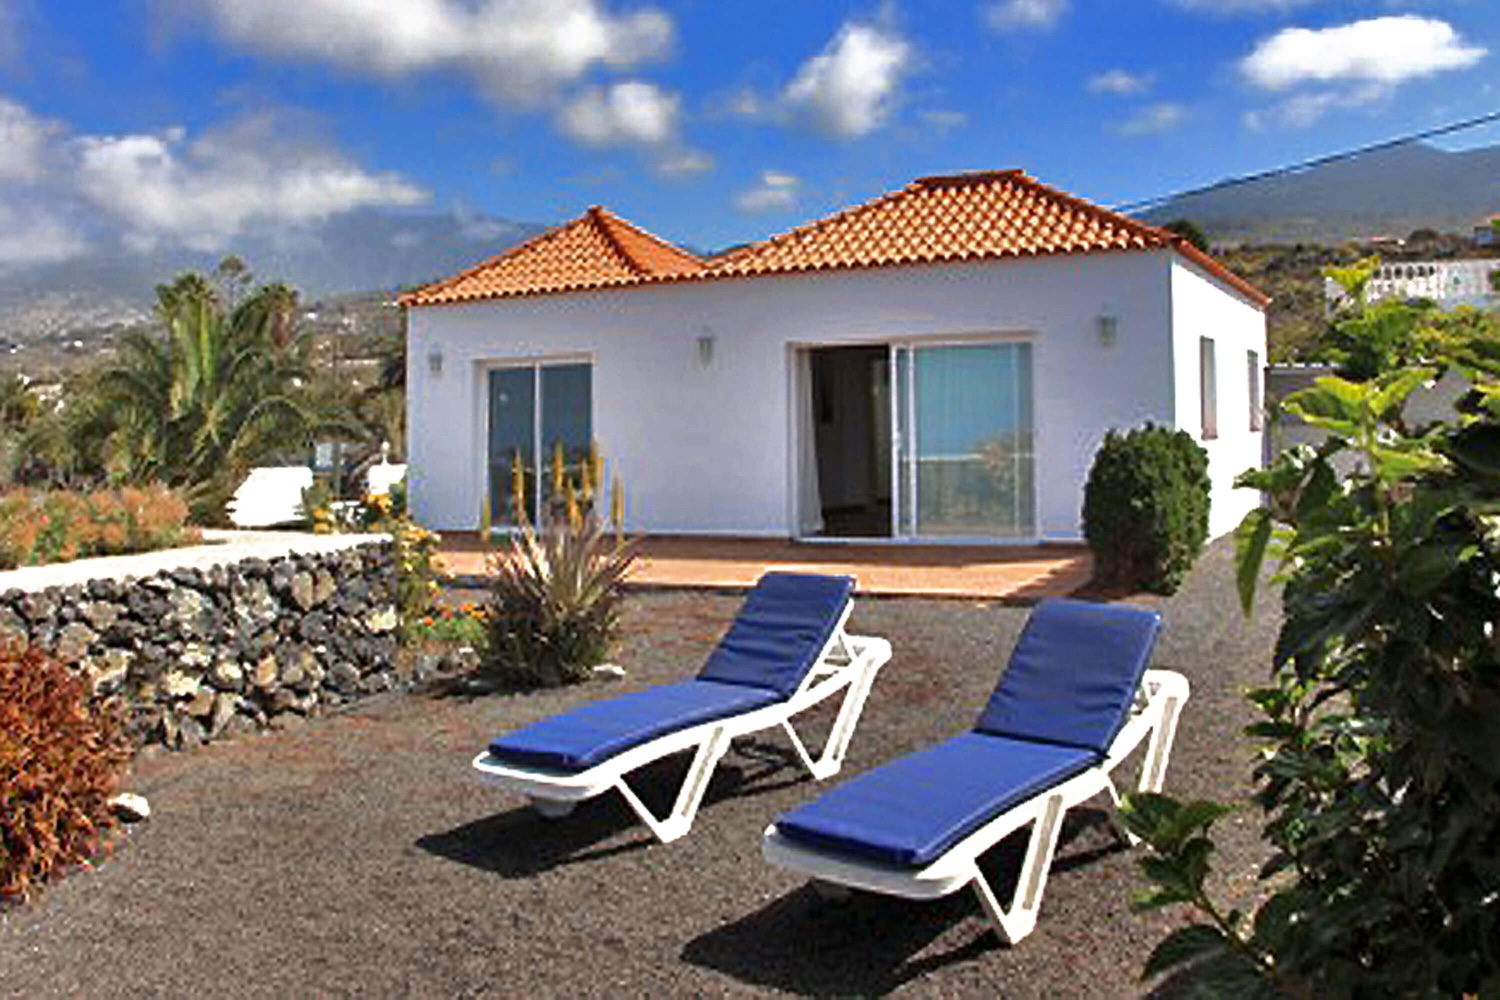 Pleasant holiday home for 4 people in a rural area, ideal to enjoy the wonderful views of the sea and the mountains